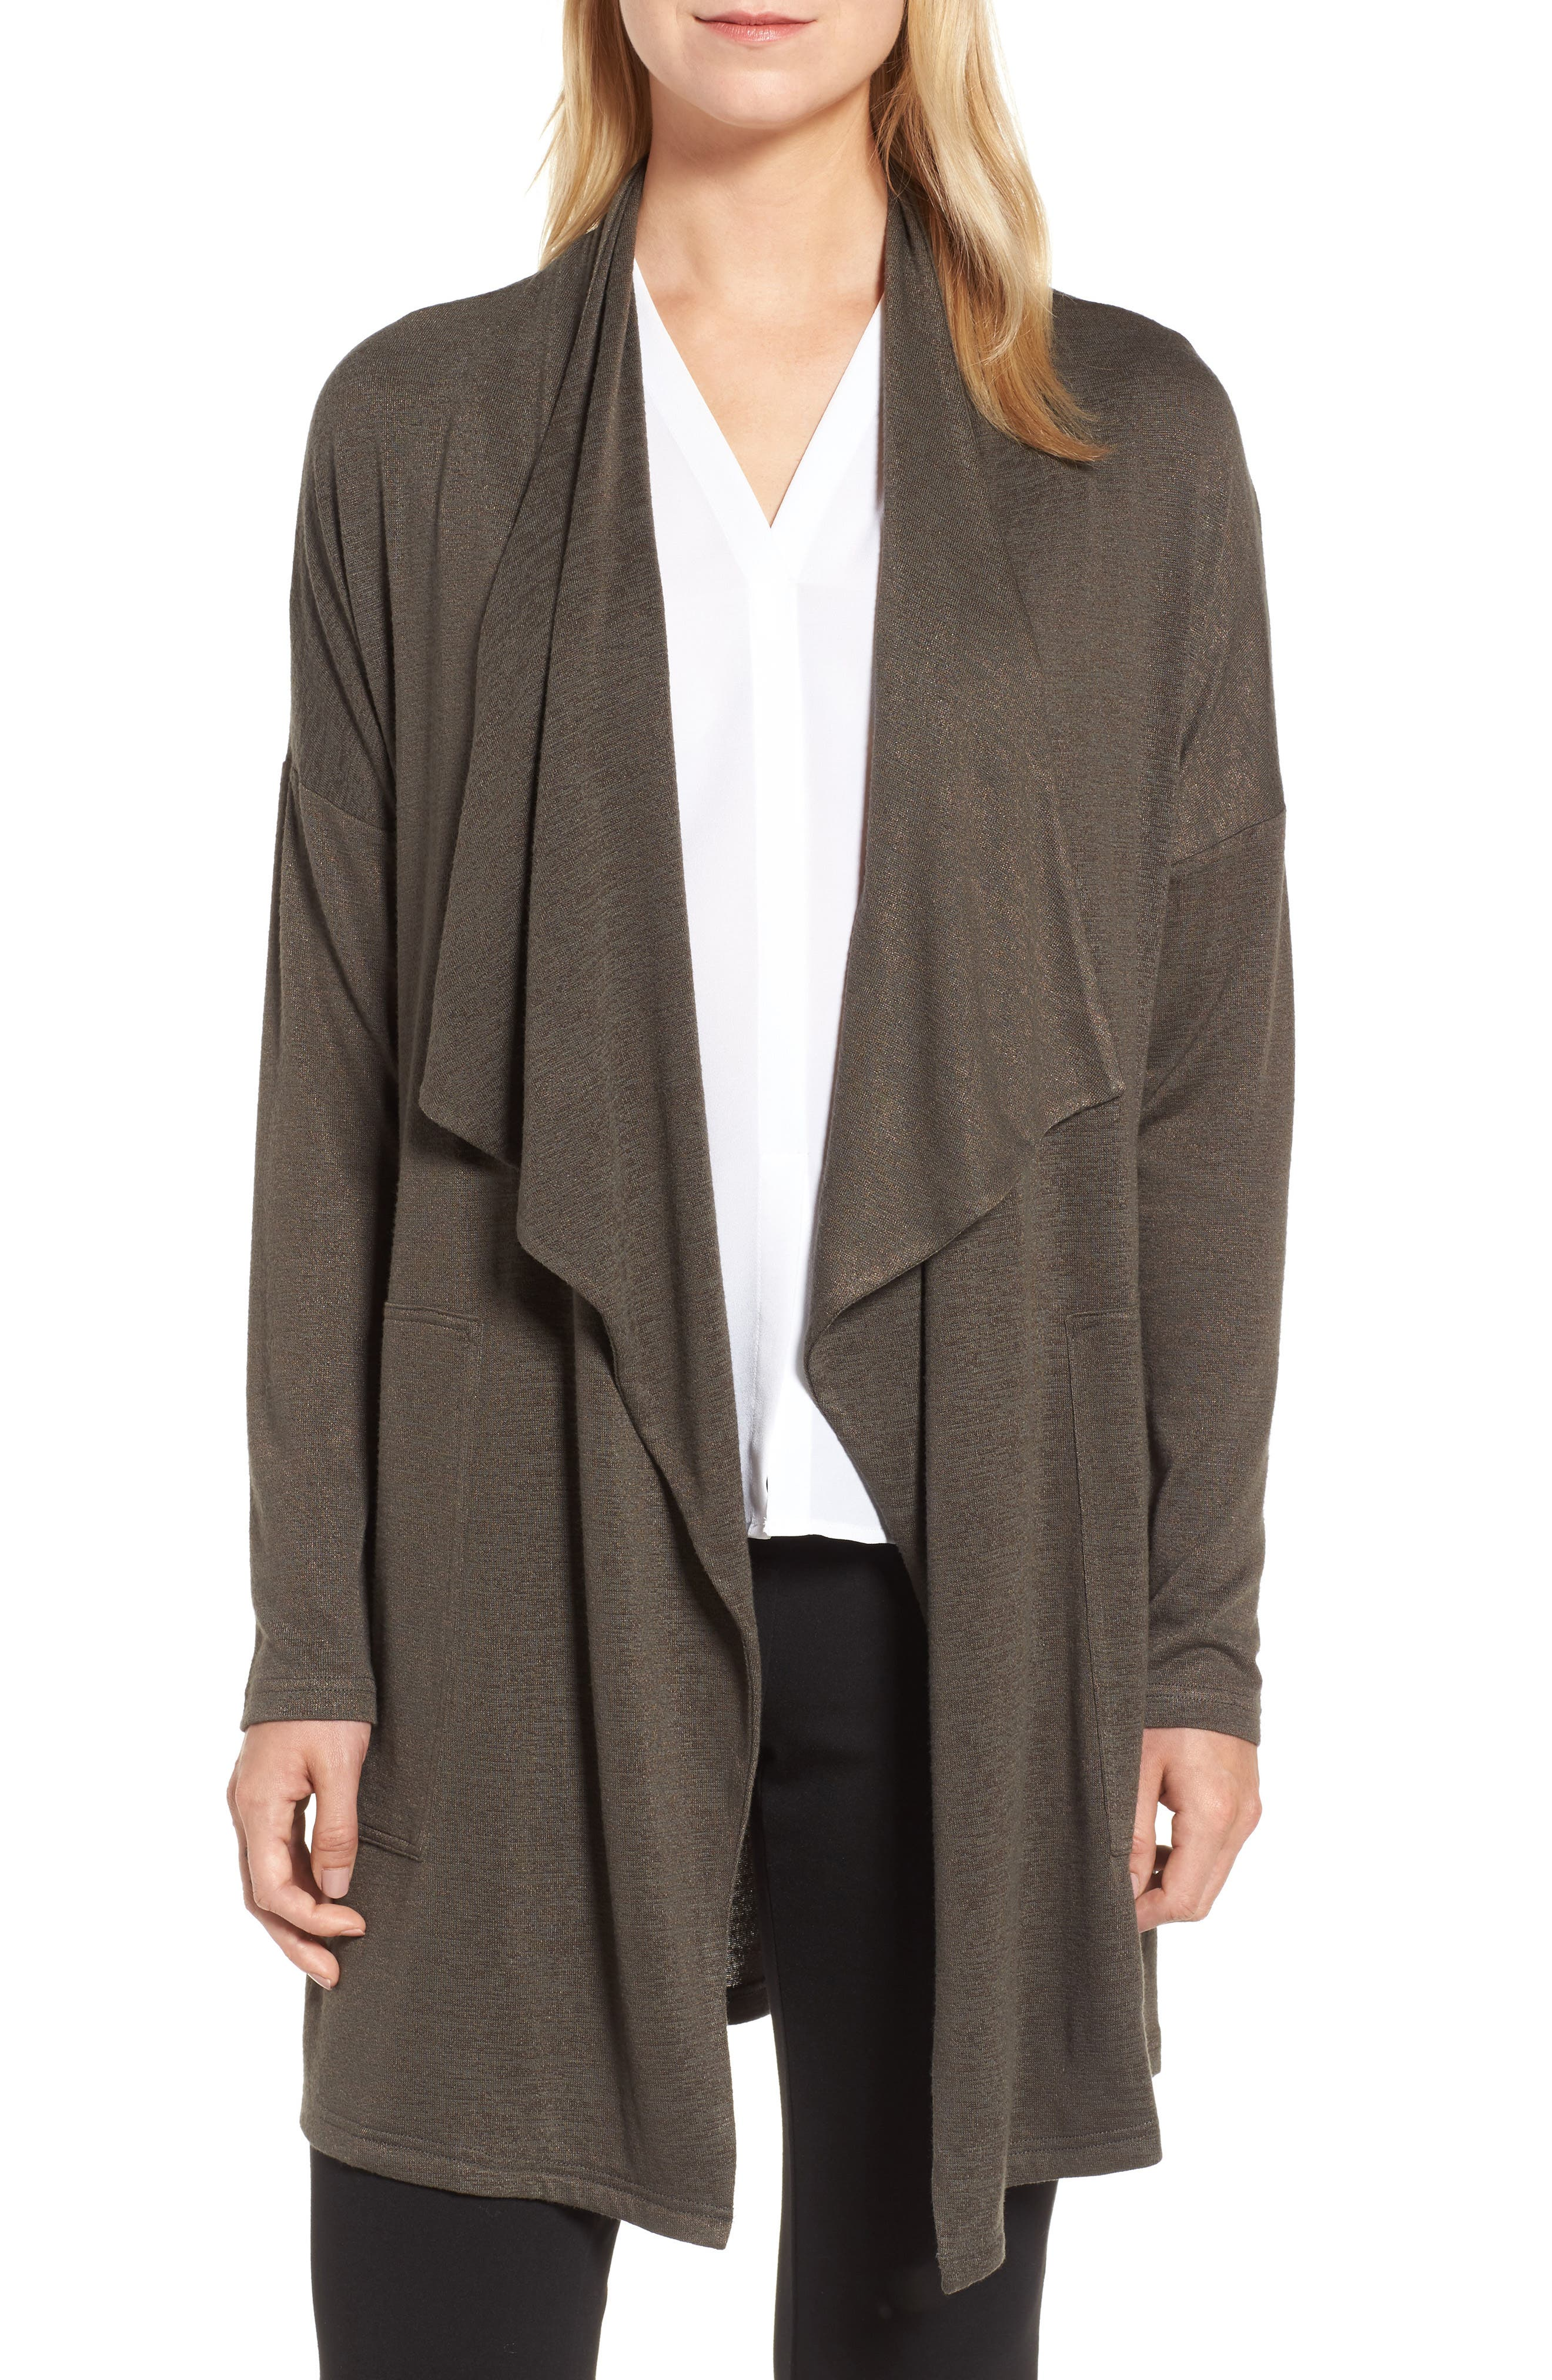 Every Occasion Drape Front Jacket,                         Main,                         color, Terrene